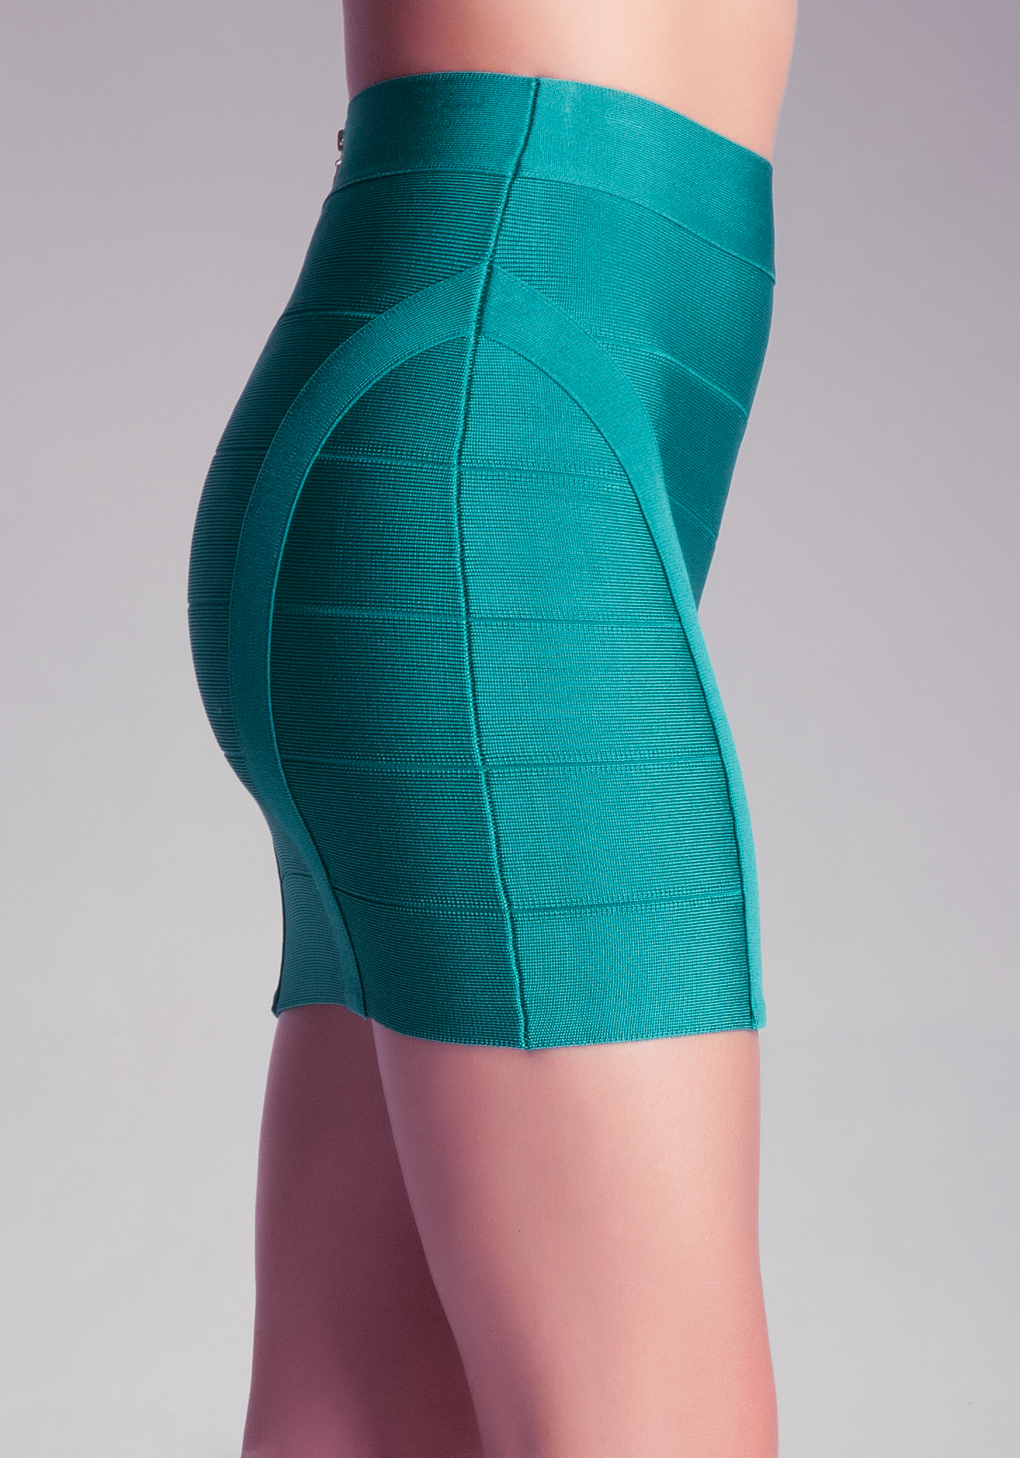 Bebe Princess Bandage Mini Skirt In Blue Green Lyst